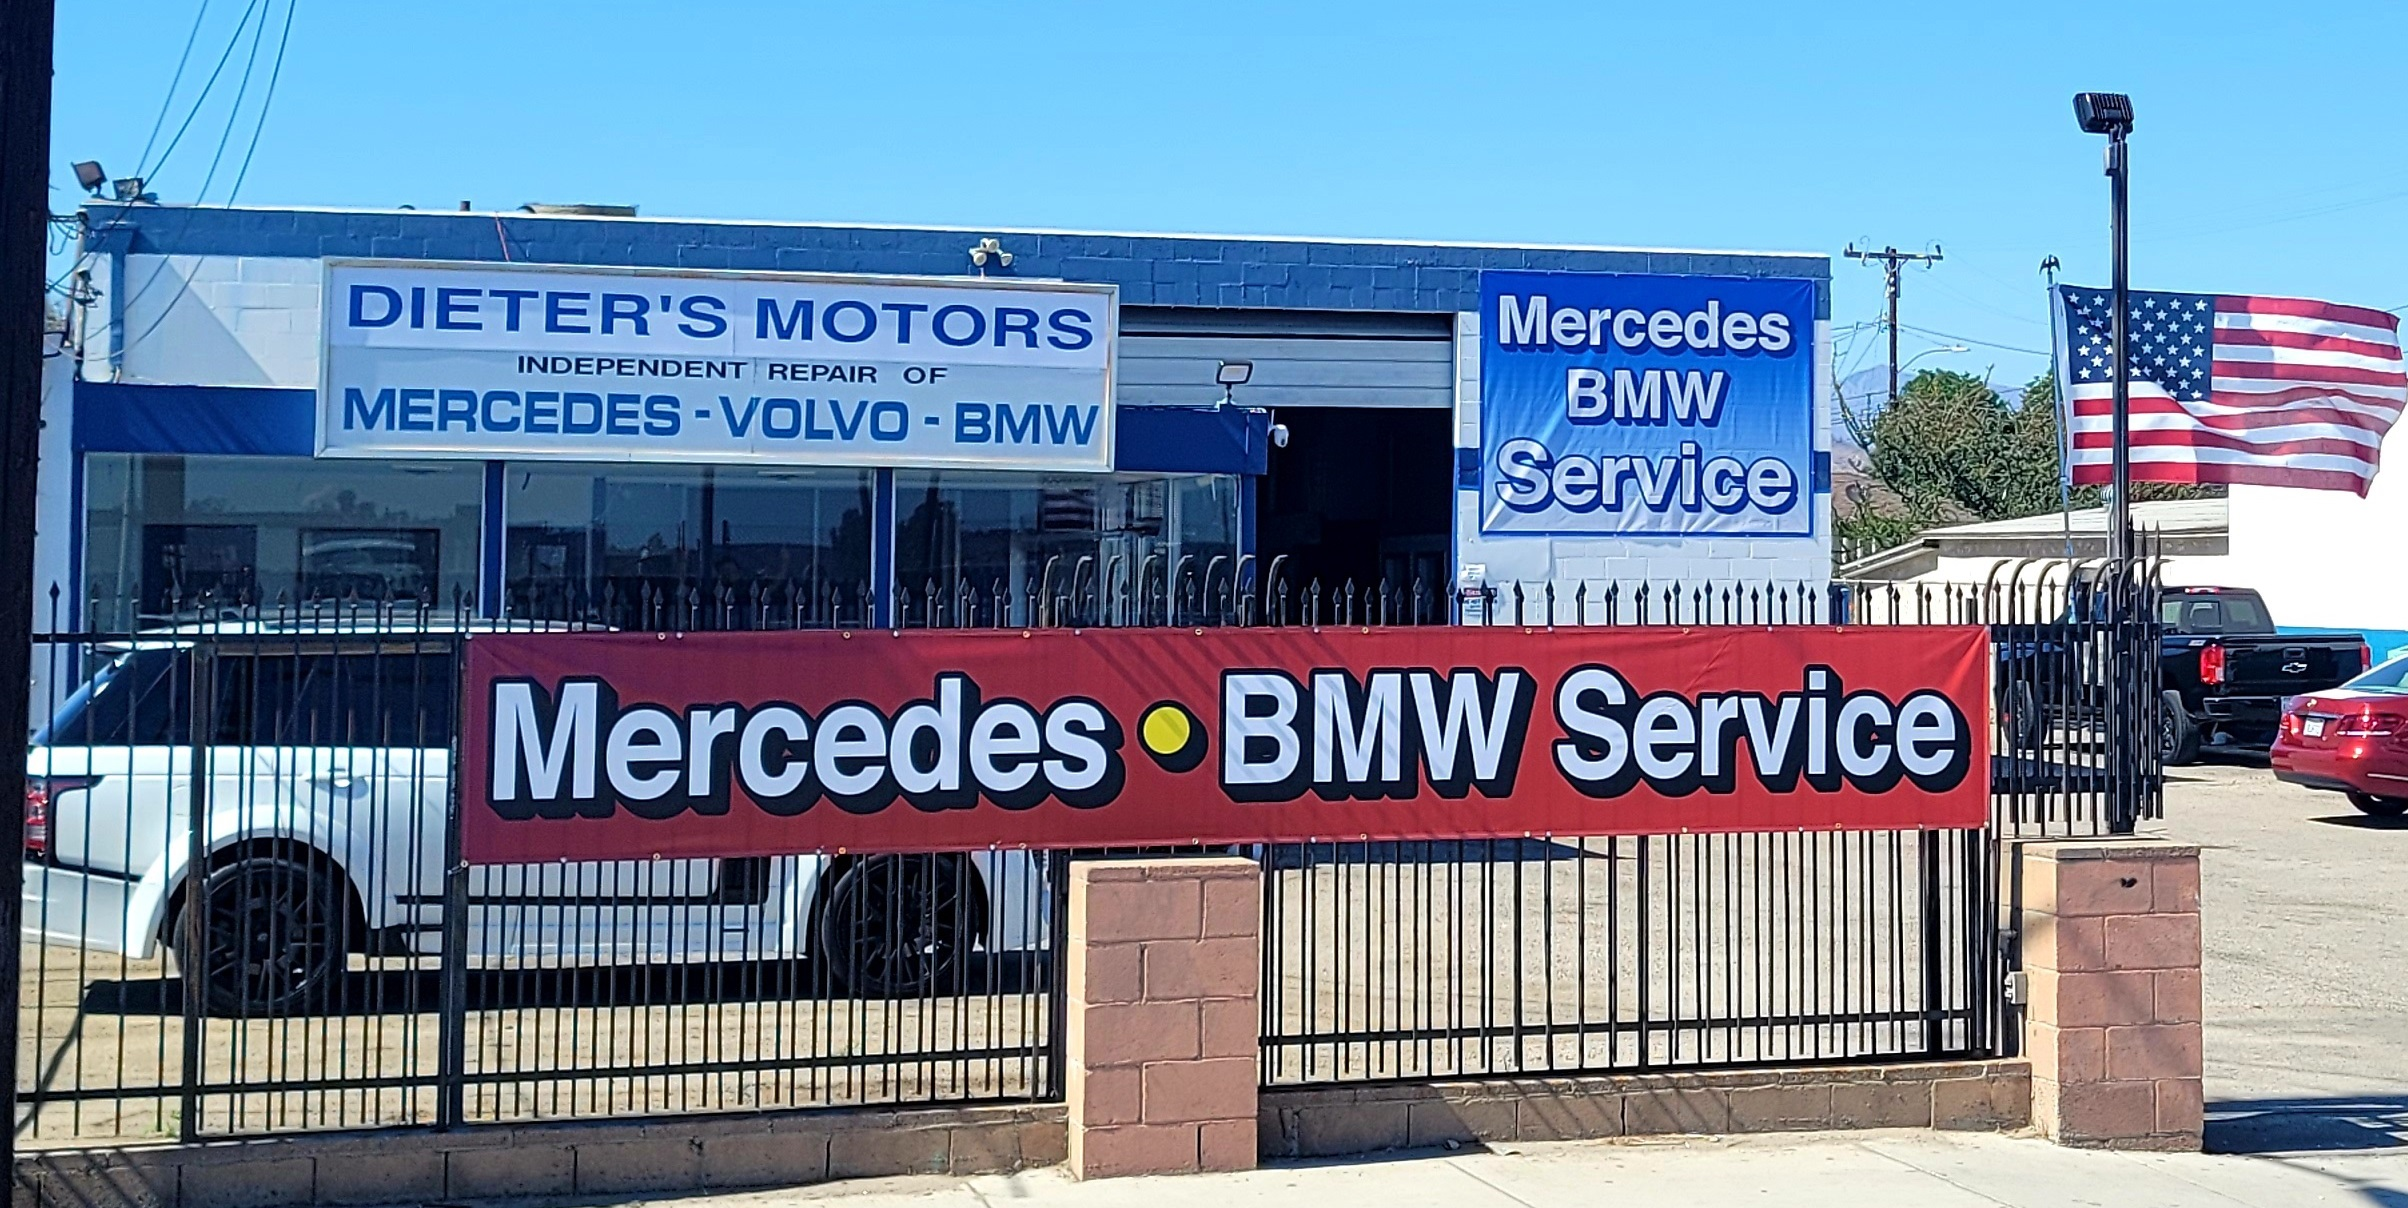 Our company | Dieter's Motors